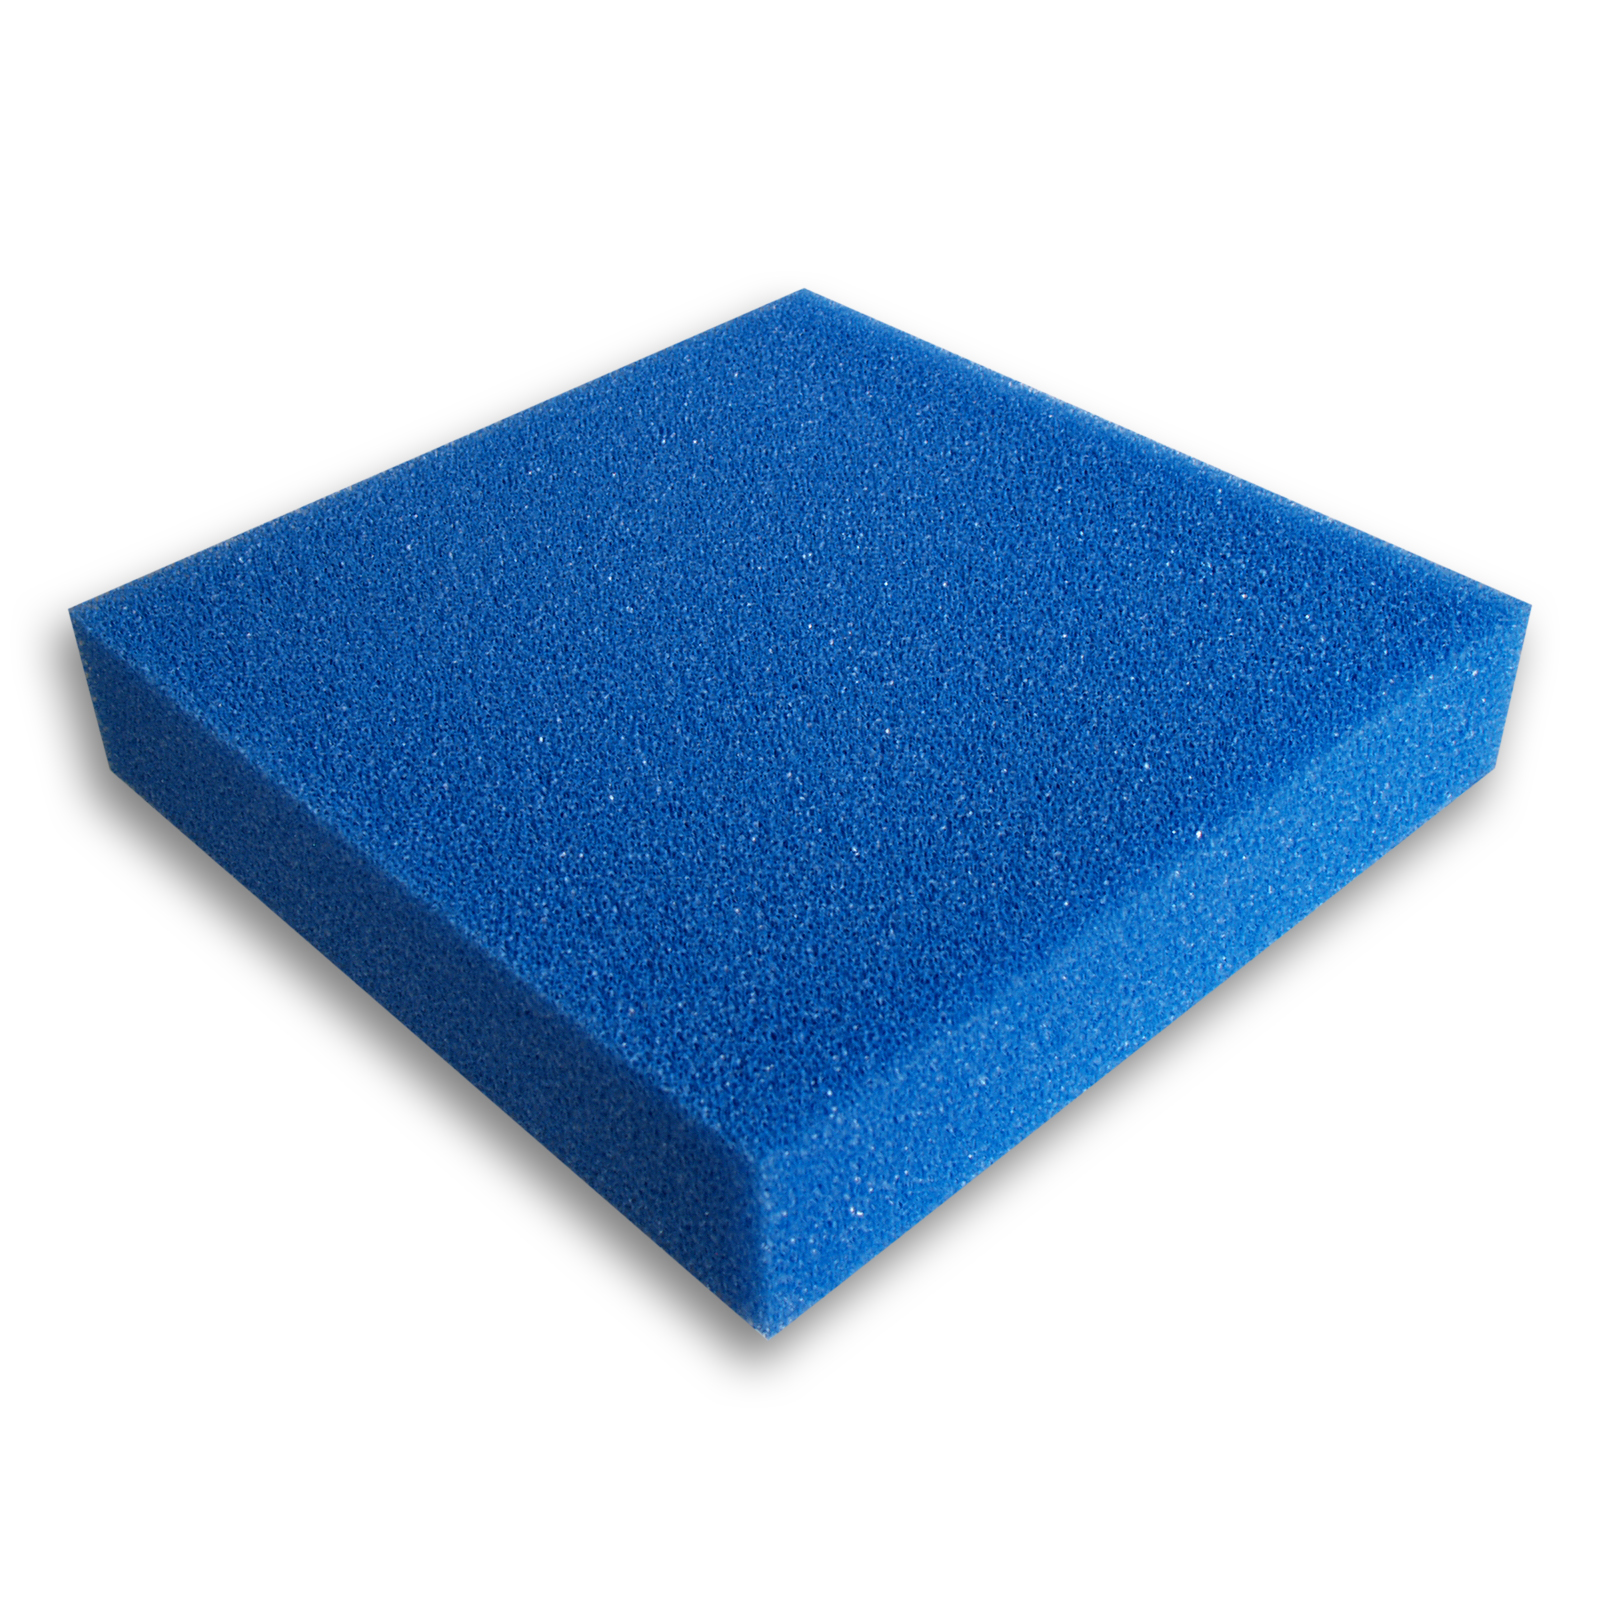 Filter sponge foam 10cm rough 10ppi pond or for Pond filter sponges